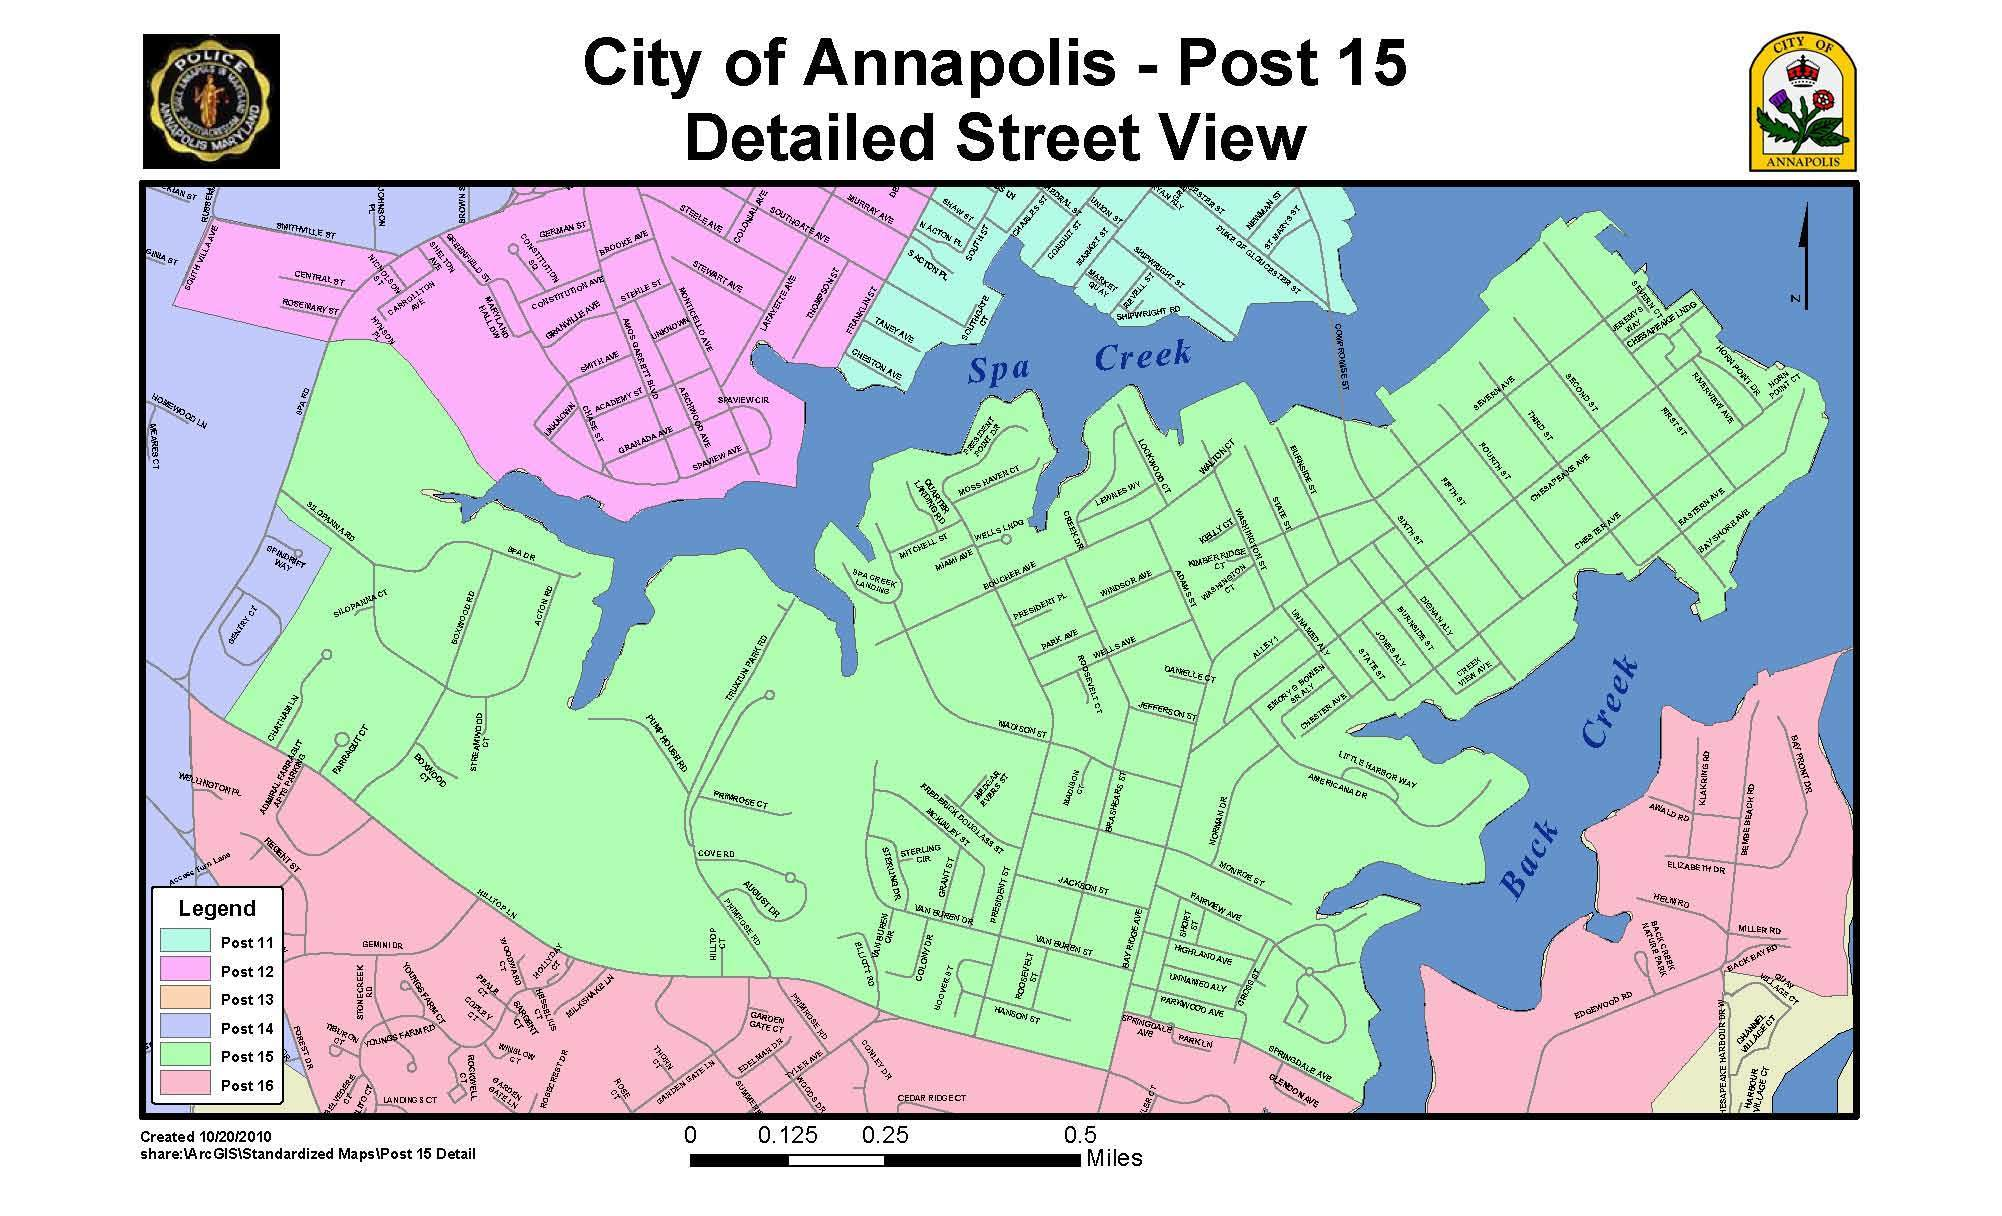 Overall crime in Annapolis down, but residents still feel unsafe ...